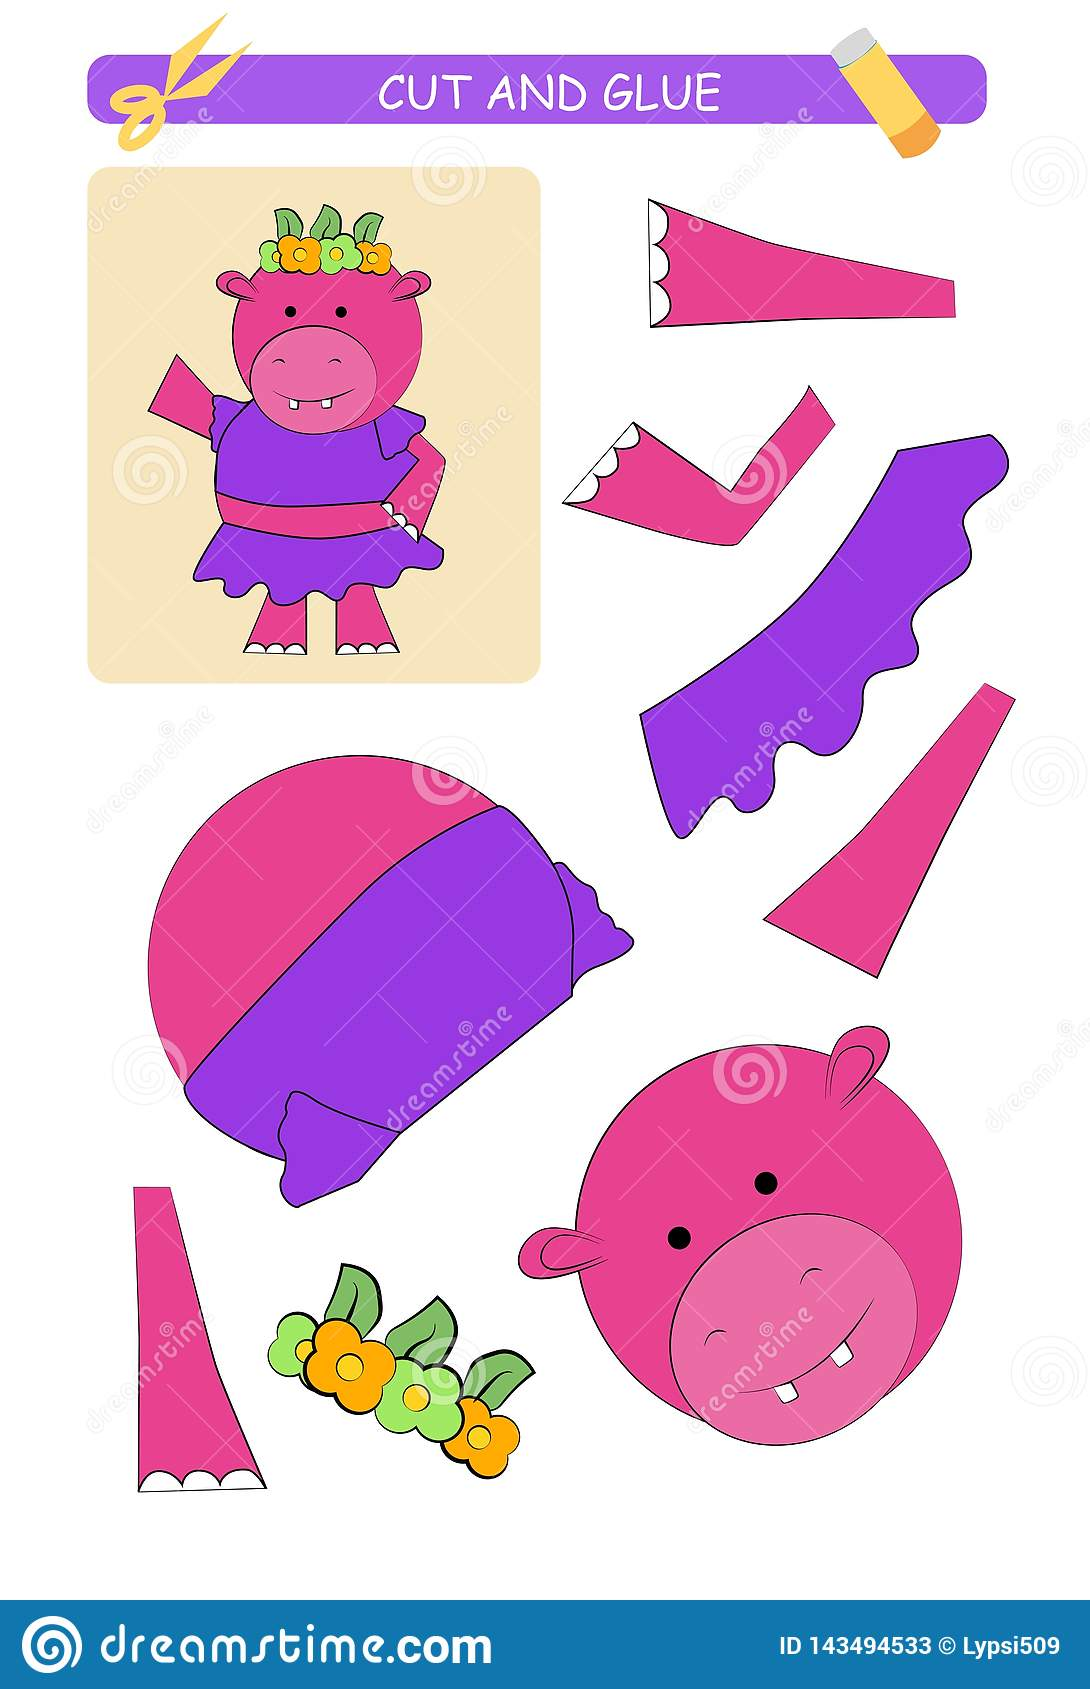 Cut And Glue Worksheet Hippopotamus Educational Game For